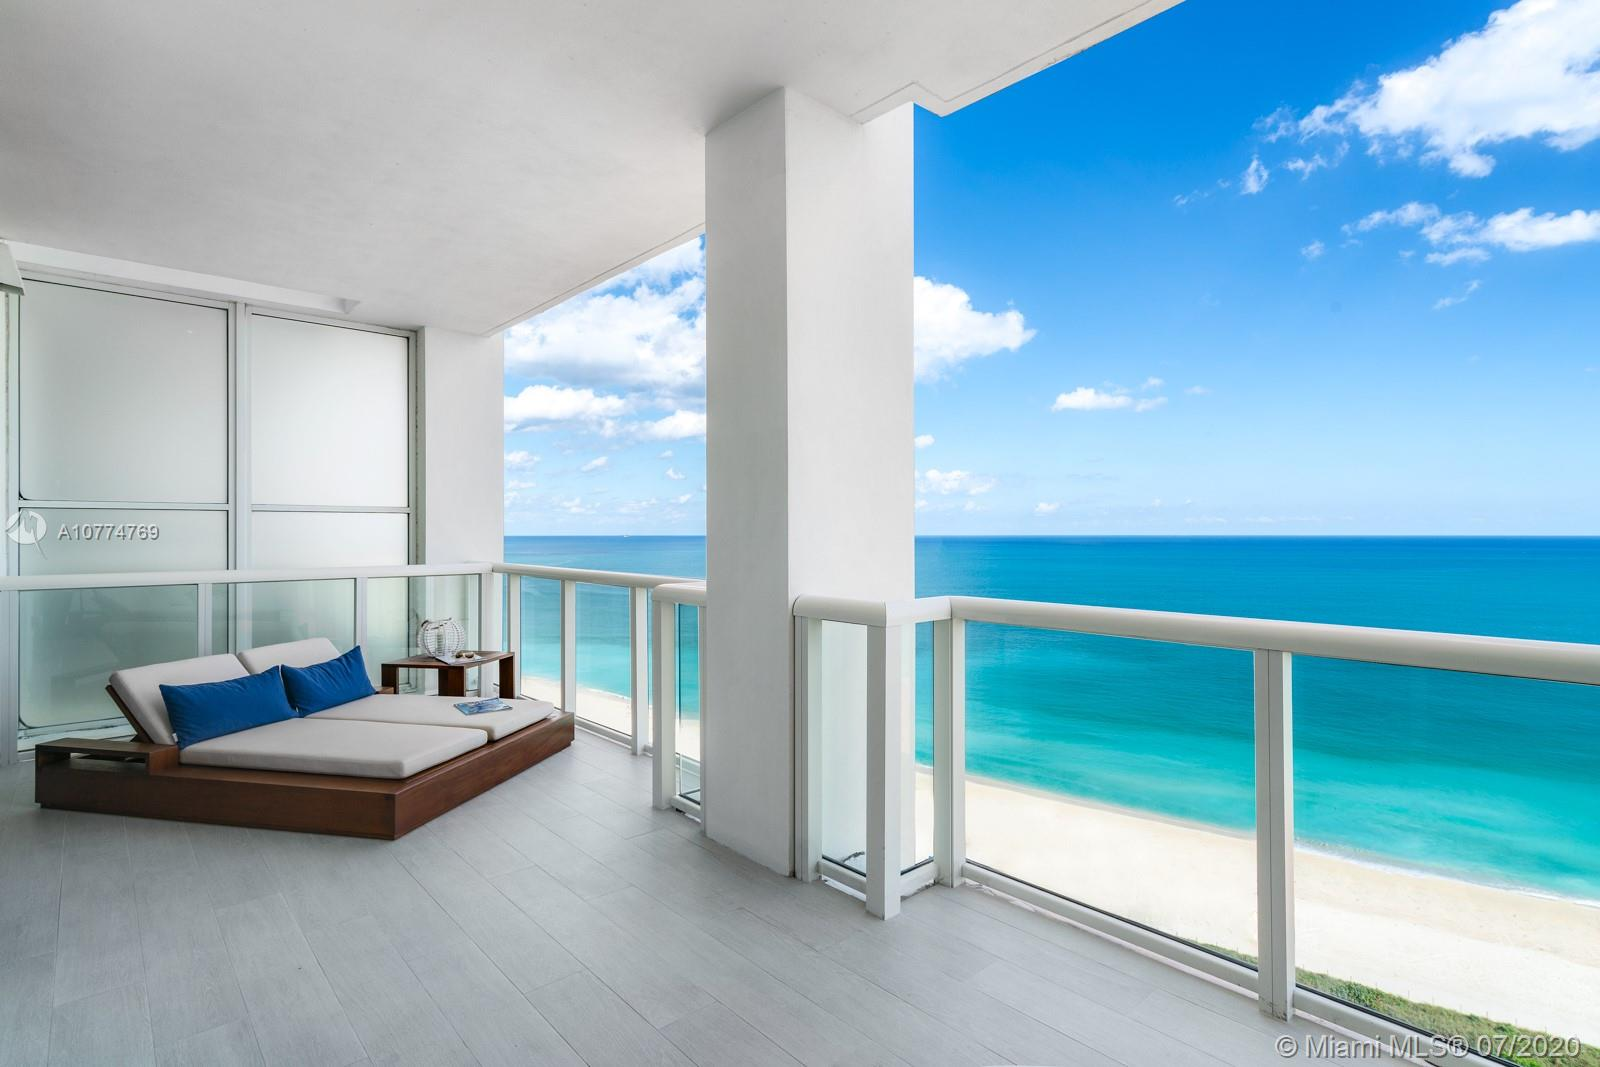 Fabulous ocean views at Continuum, the best located condo on 1,000 ft. of white sandy beach & amazing amenities. Over 3,600 total sq.ft., this private & exquisite Southeast-facing corner is most desirable with new imported finishes & private elevator lobby. Remodeled in 2019, a design masterpiece with French Oak floors, custom fittings & furnishings throughout, this home in the sky offers 4 terraces, 4 bedrooms & 4.5 bathrooms. Gaze at the deep blue ocean or 12 acres of Continuum's manicured grounds through the floor-to-ceiling glass enclosed living room. Two parking spaces, Spa, gym w/classes, private beach attendants, 2 free form lagoon pools, lap pool, 3 hard-tru tennis courts, dog park, kids room, concierge, valet, business center all sitting in the best location in town, South Pointe.